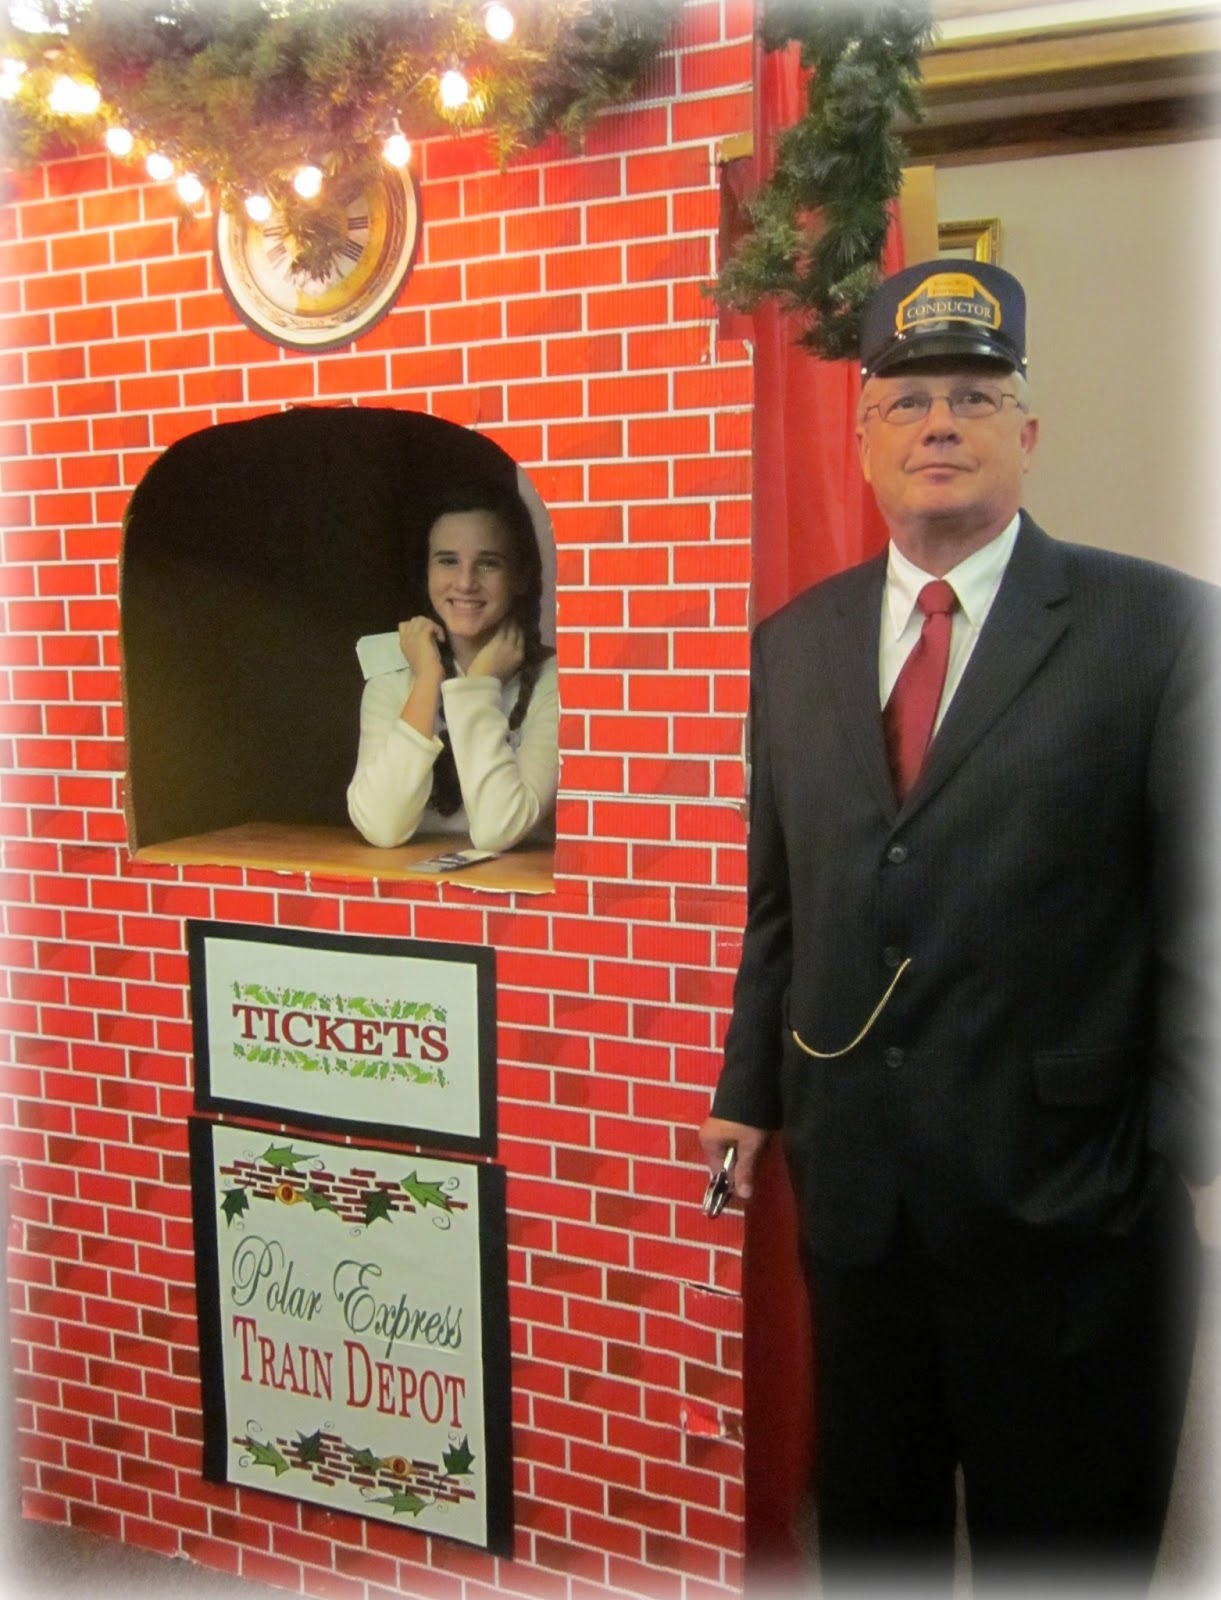 http://www.michellelunt.com/2012/12/our-polar-express-church-christmas-party.html